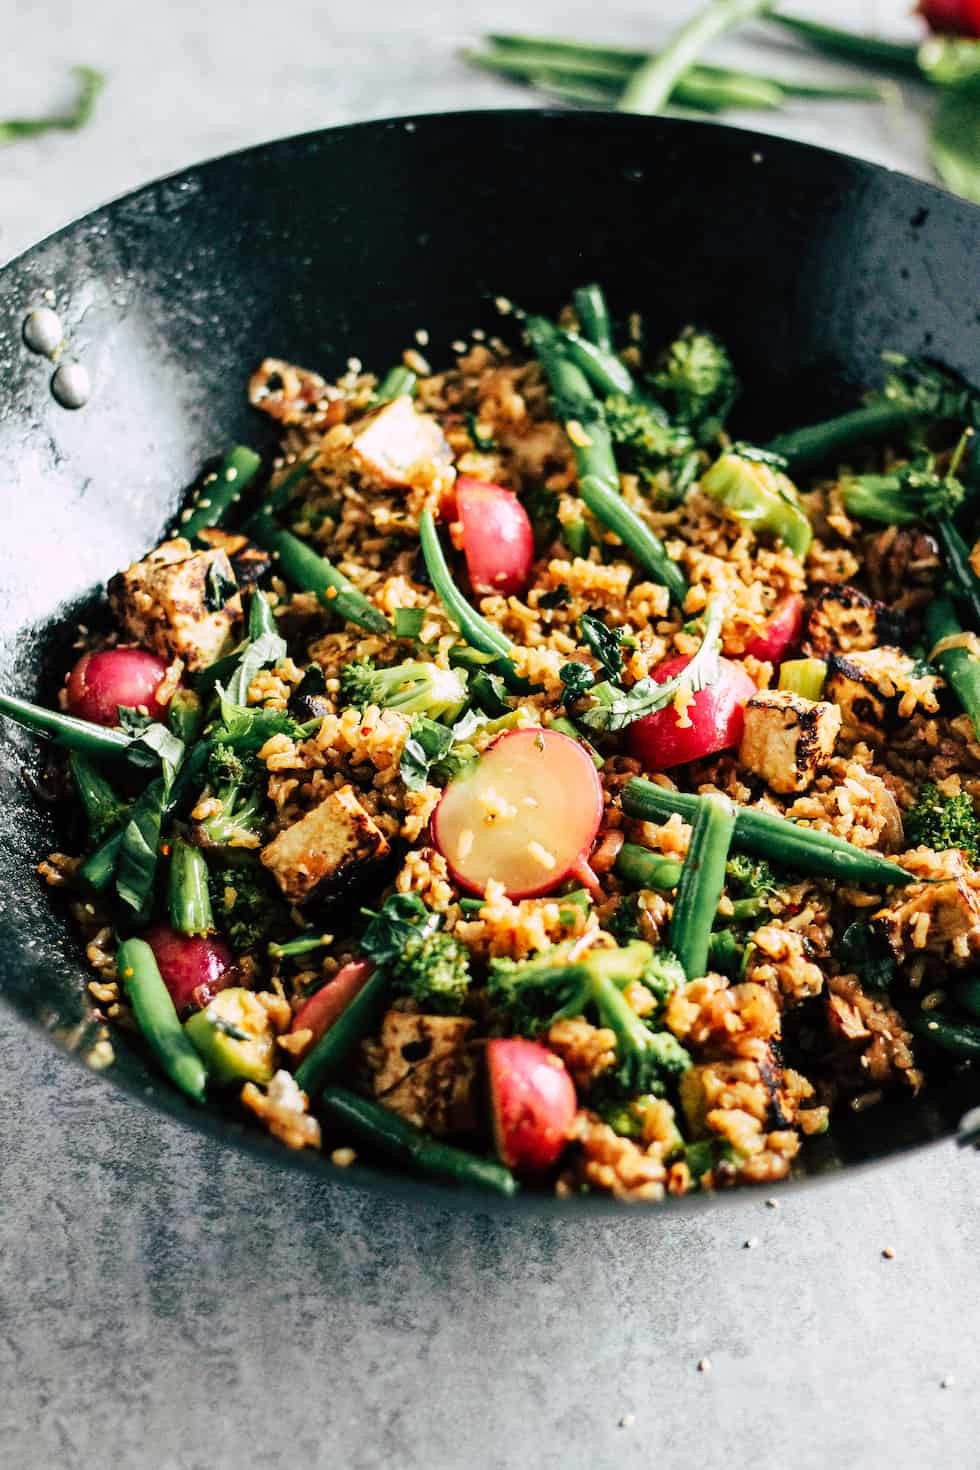 How to make easy college meals like vegetable fried rice.